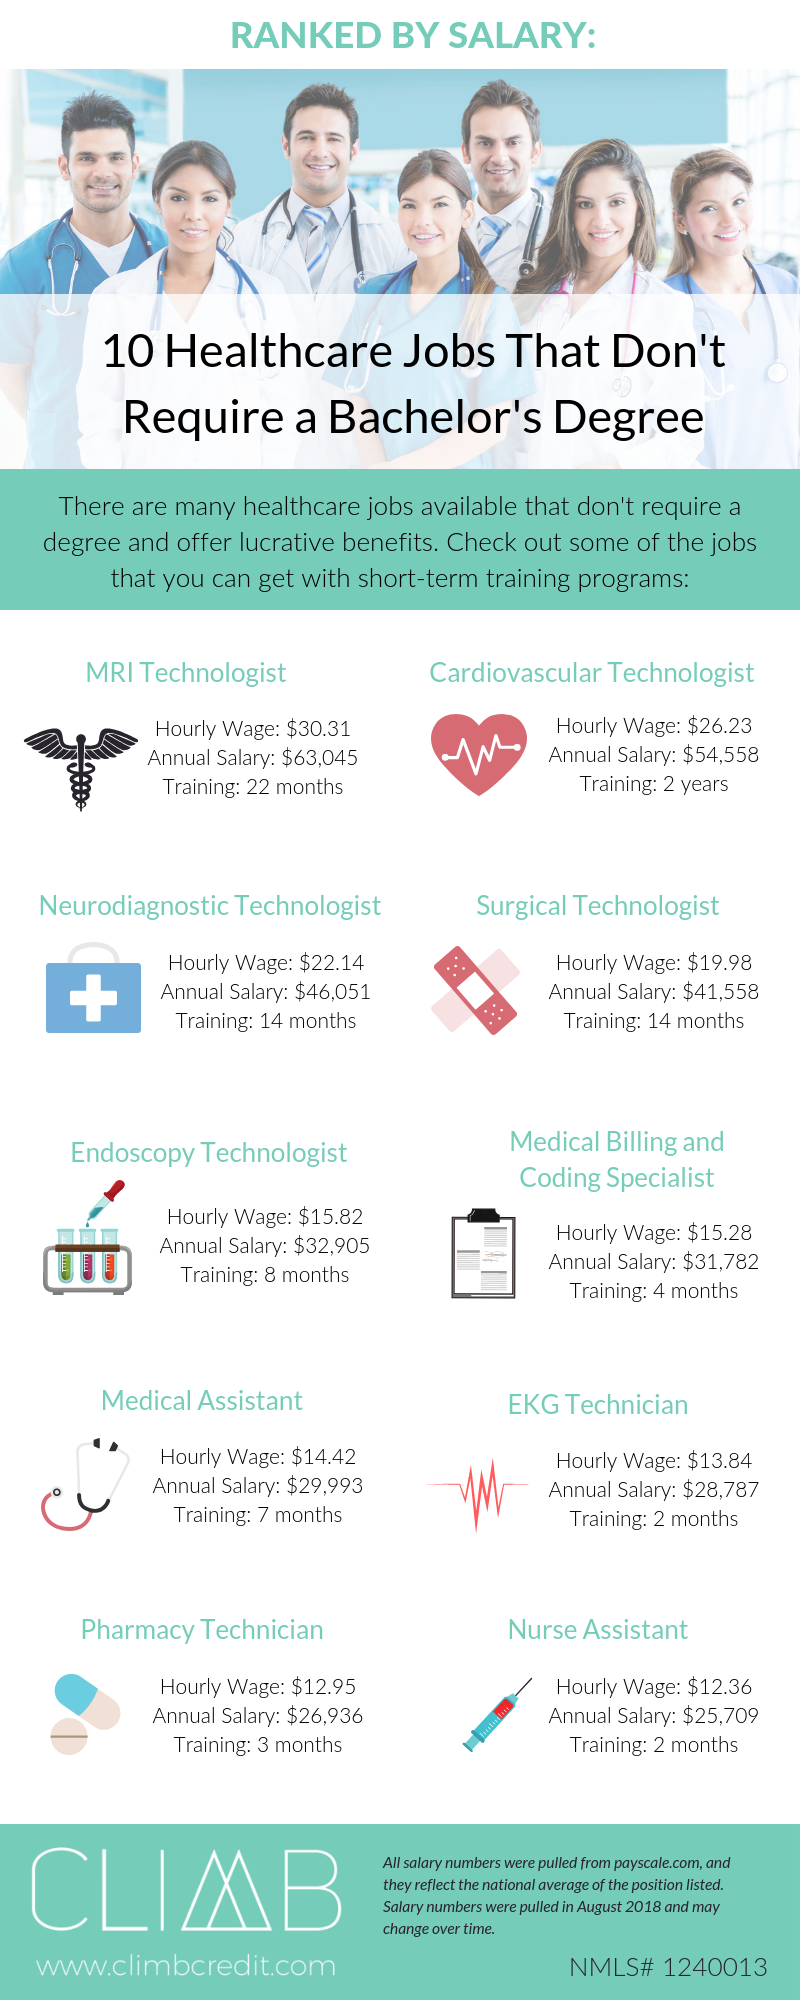 Ranked By Salary 10 Healthcare Jobs That Don T Require A Bachelor S Degree Climb Credit Healthcare Jobs Medical Jobs Healthcare Careers